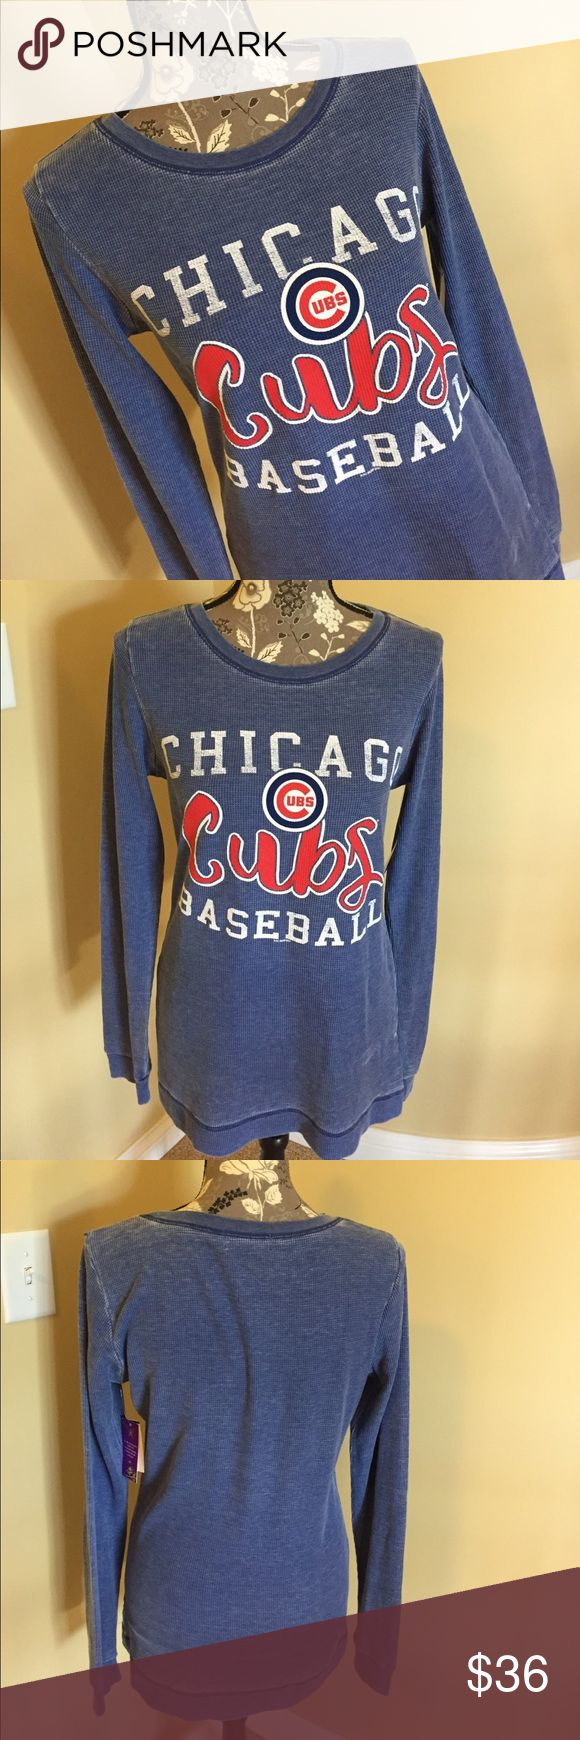 """NWT Chicago Cubs long sleeved top NWT Chicago Cubs long sleeved lighter weight waffle shirt size large. Super comfy. Chest 18"""", length 27 1/2"""", sleeves 26"""". Material poly, cotton, spandex blend. Touch by Alyssa Milano Tops Tees - Long Sleeve"""